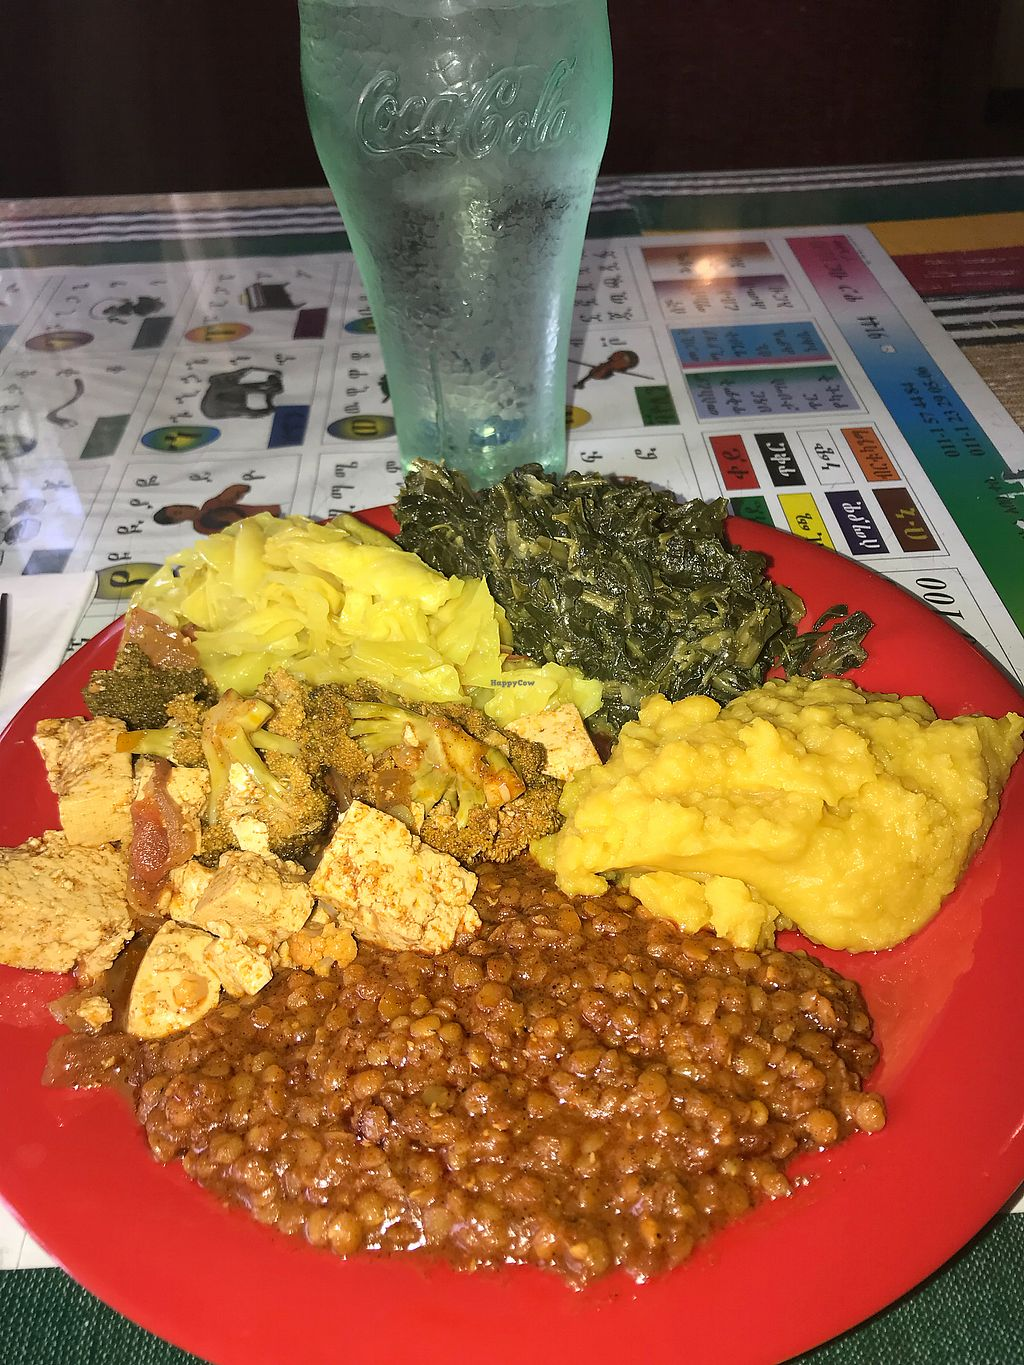 "Photo of Queen Sheba  by <a href=""/members/profile/JaedaJames"">JaedaJames</a> <br/>Full vegan lunch buffet  <br/> October 21, 2017  - <a href='/contact/abuse/image/9116/317158'>Report</a>"